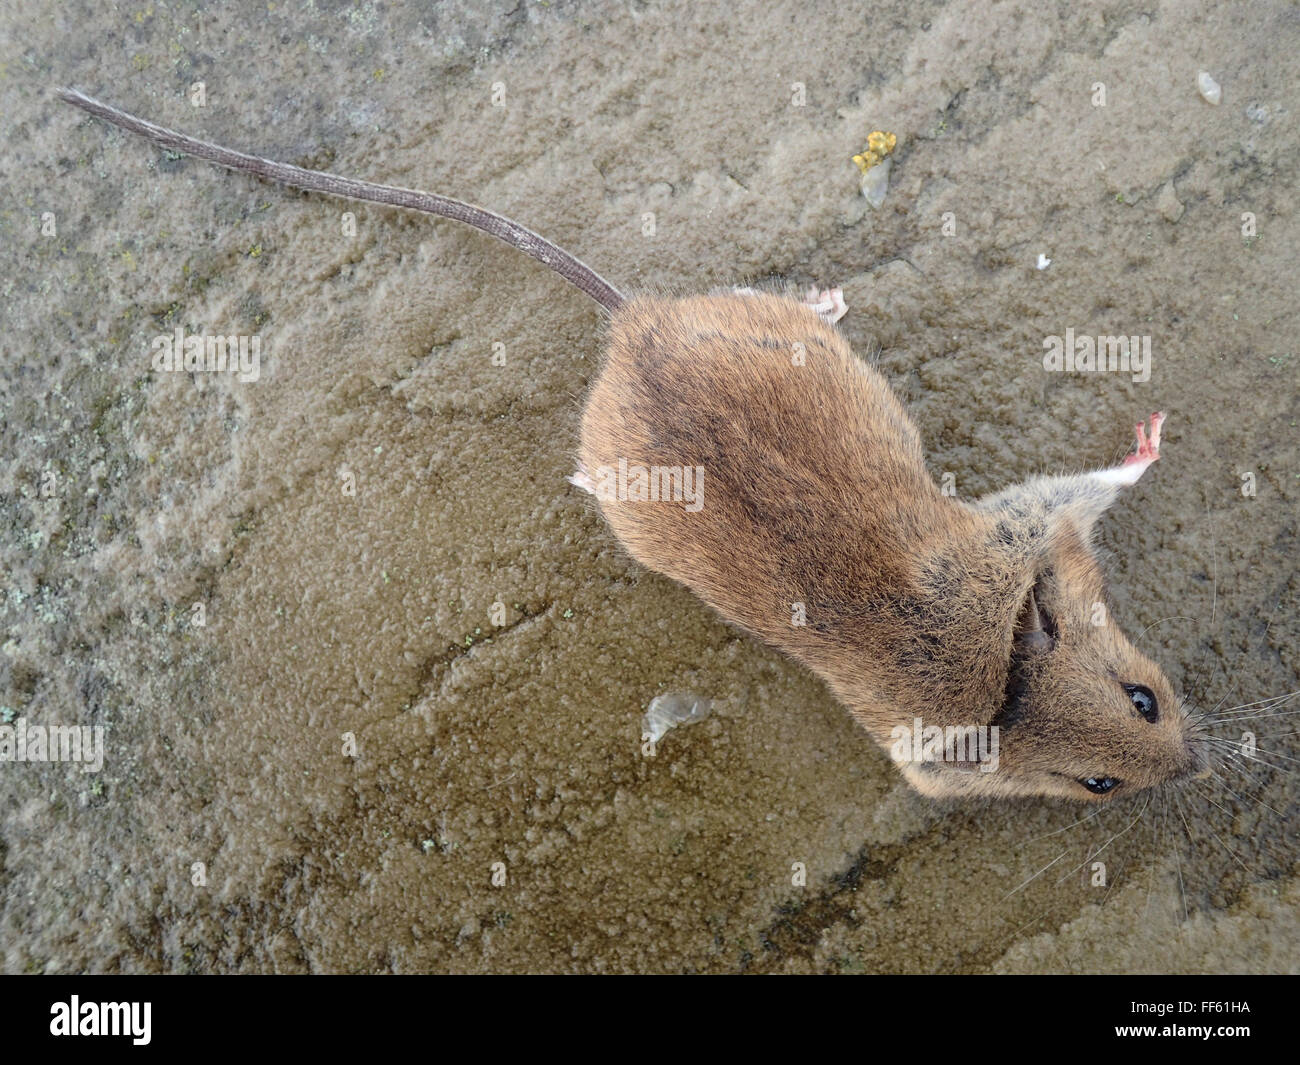 Dorsal view of dead house mouse (Mus musculus) killed by mouse trap, on limestone paving slab - Stock Image